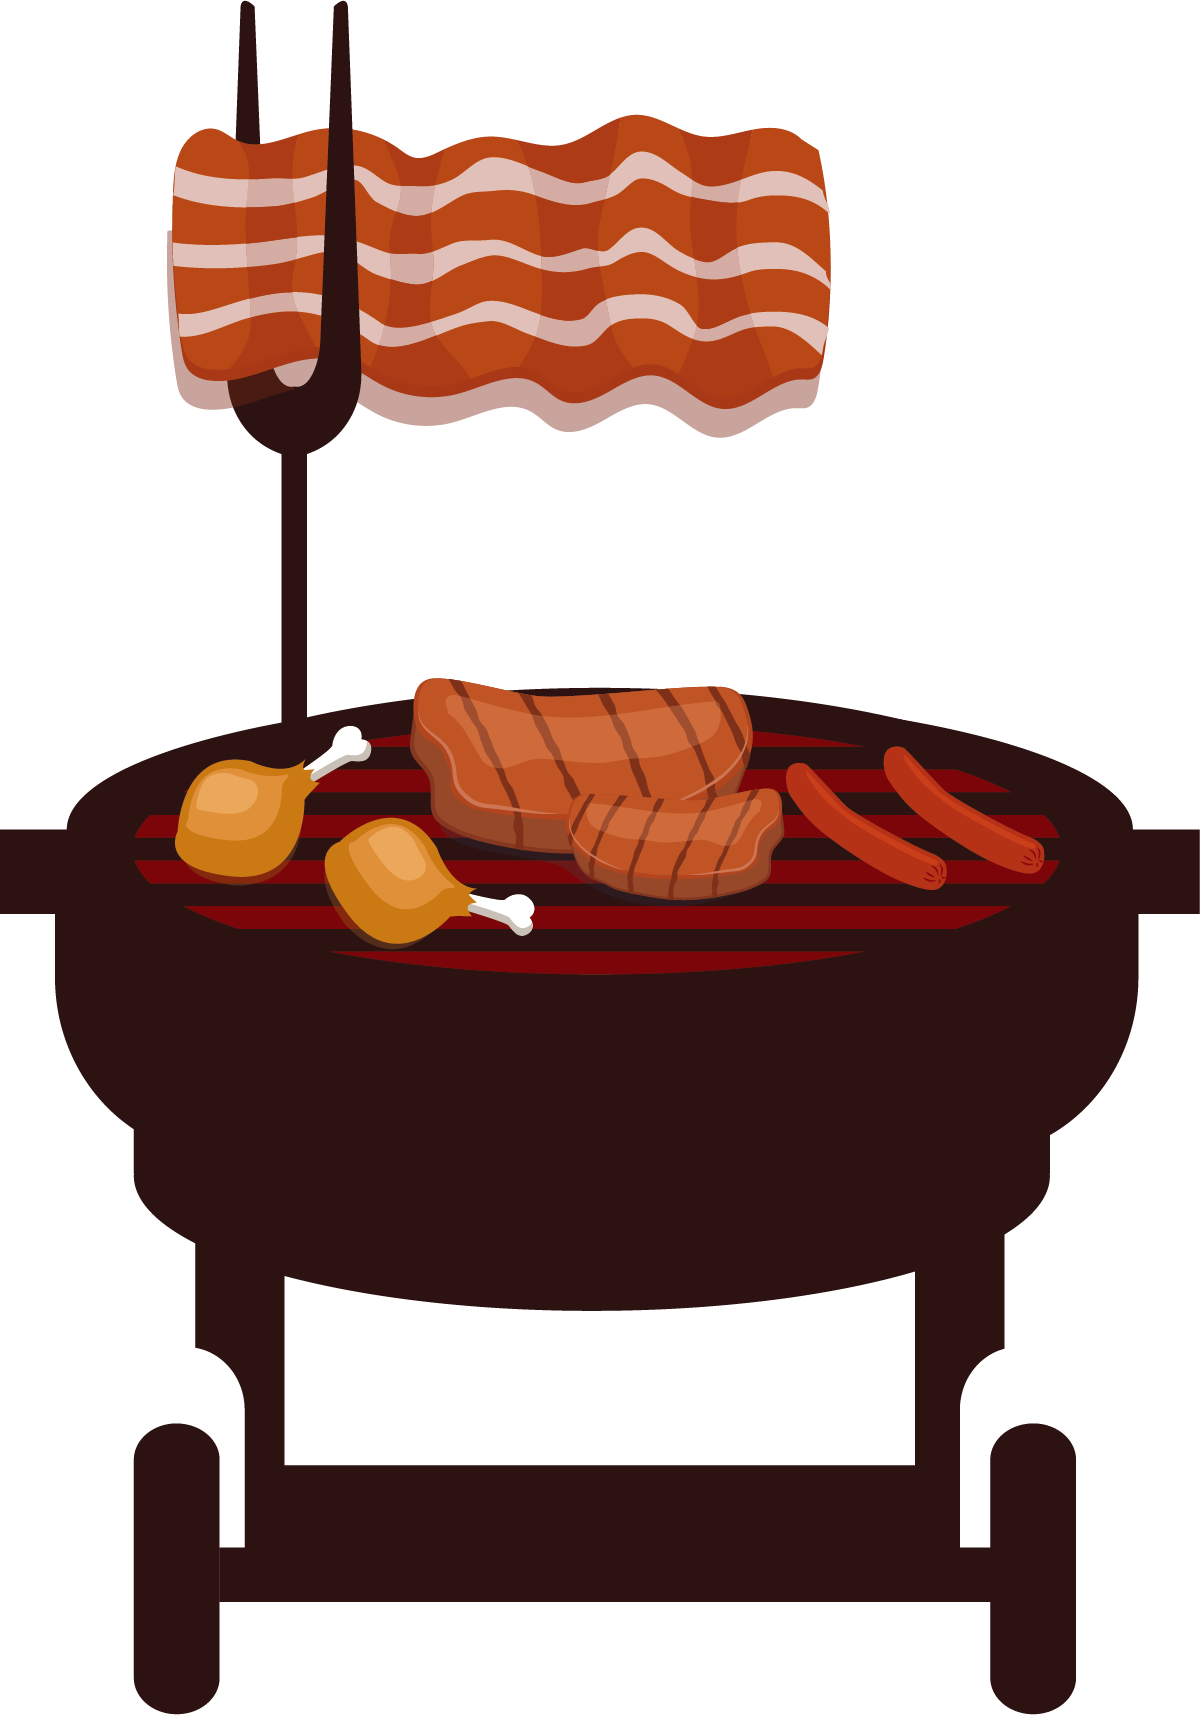 Bbq grill illustration png. Barbecue barbacoa churrasco beefsteak